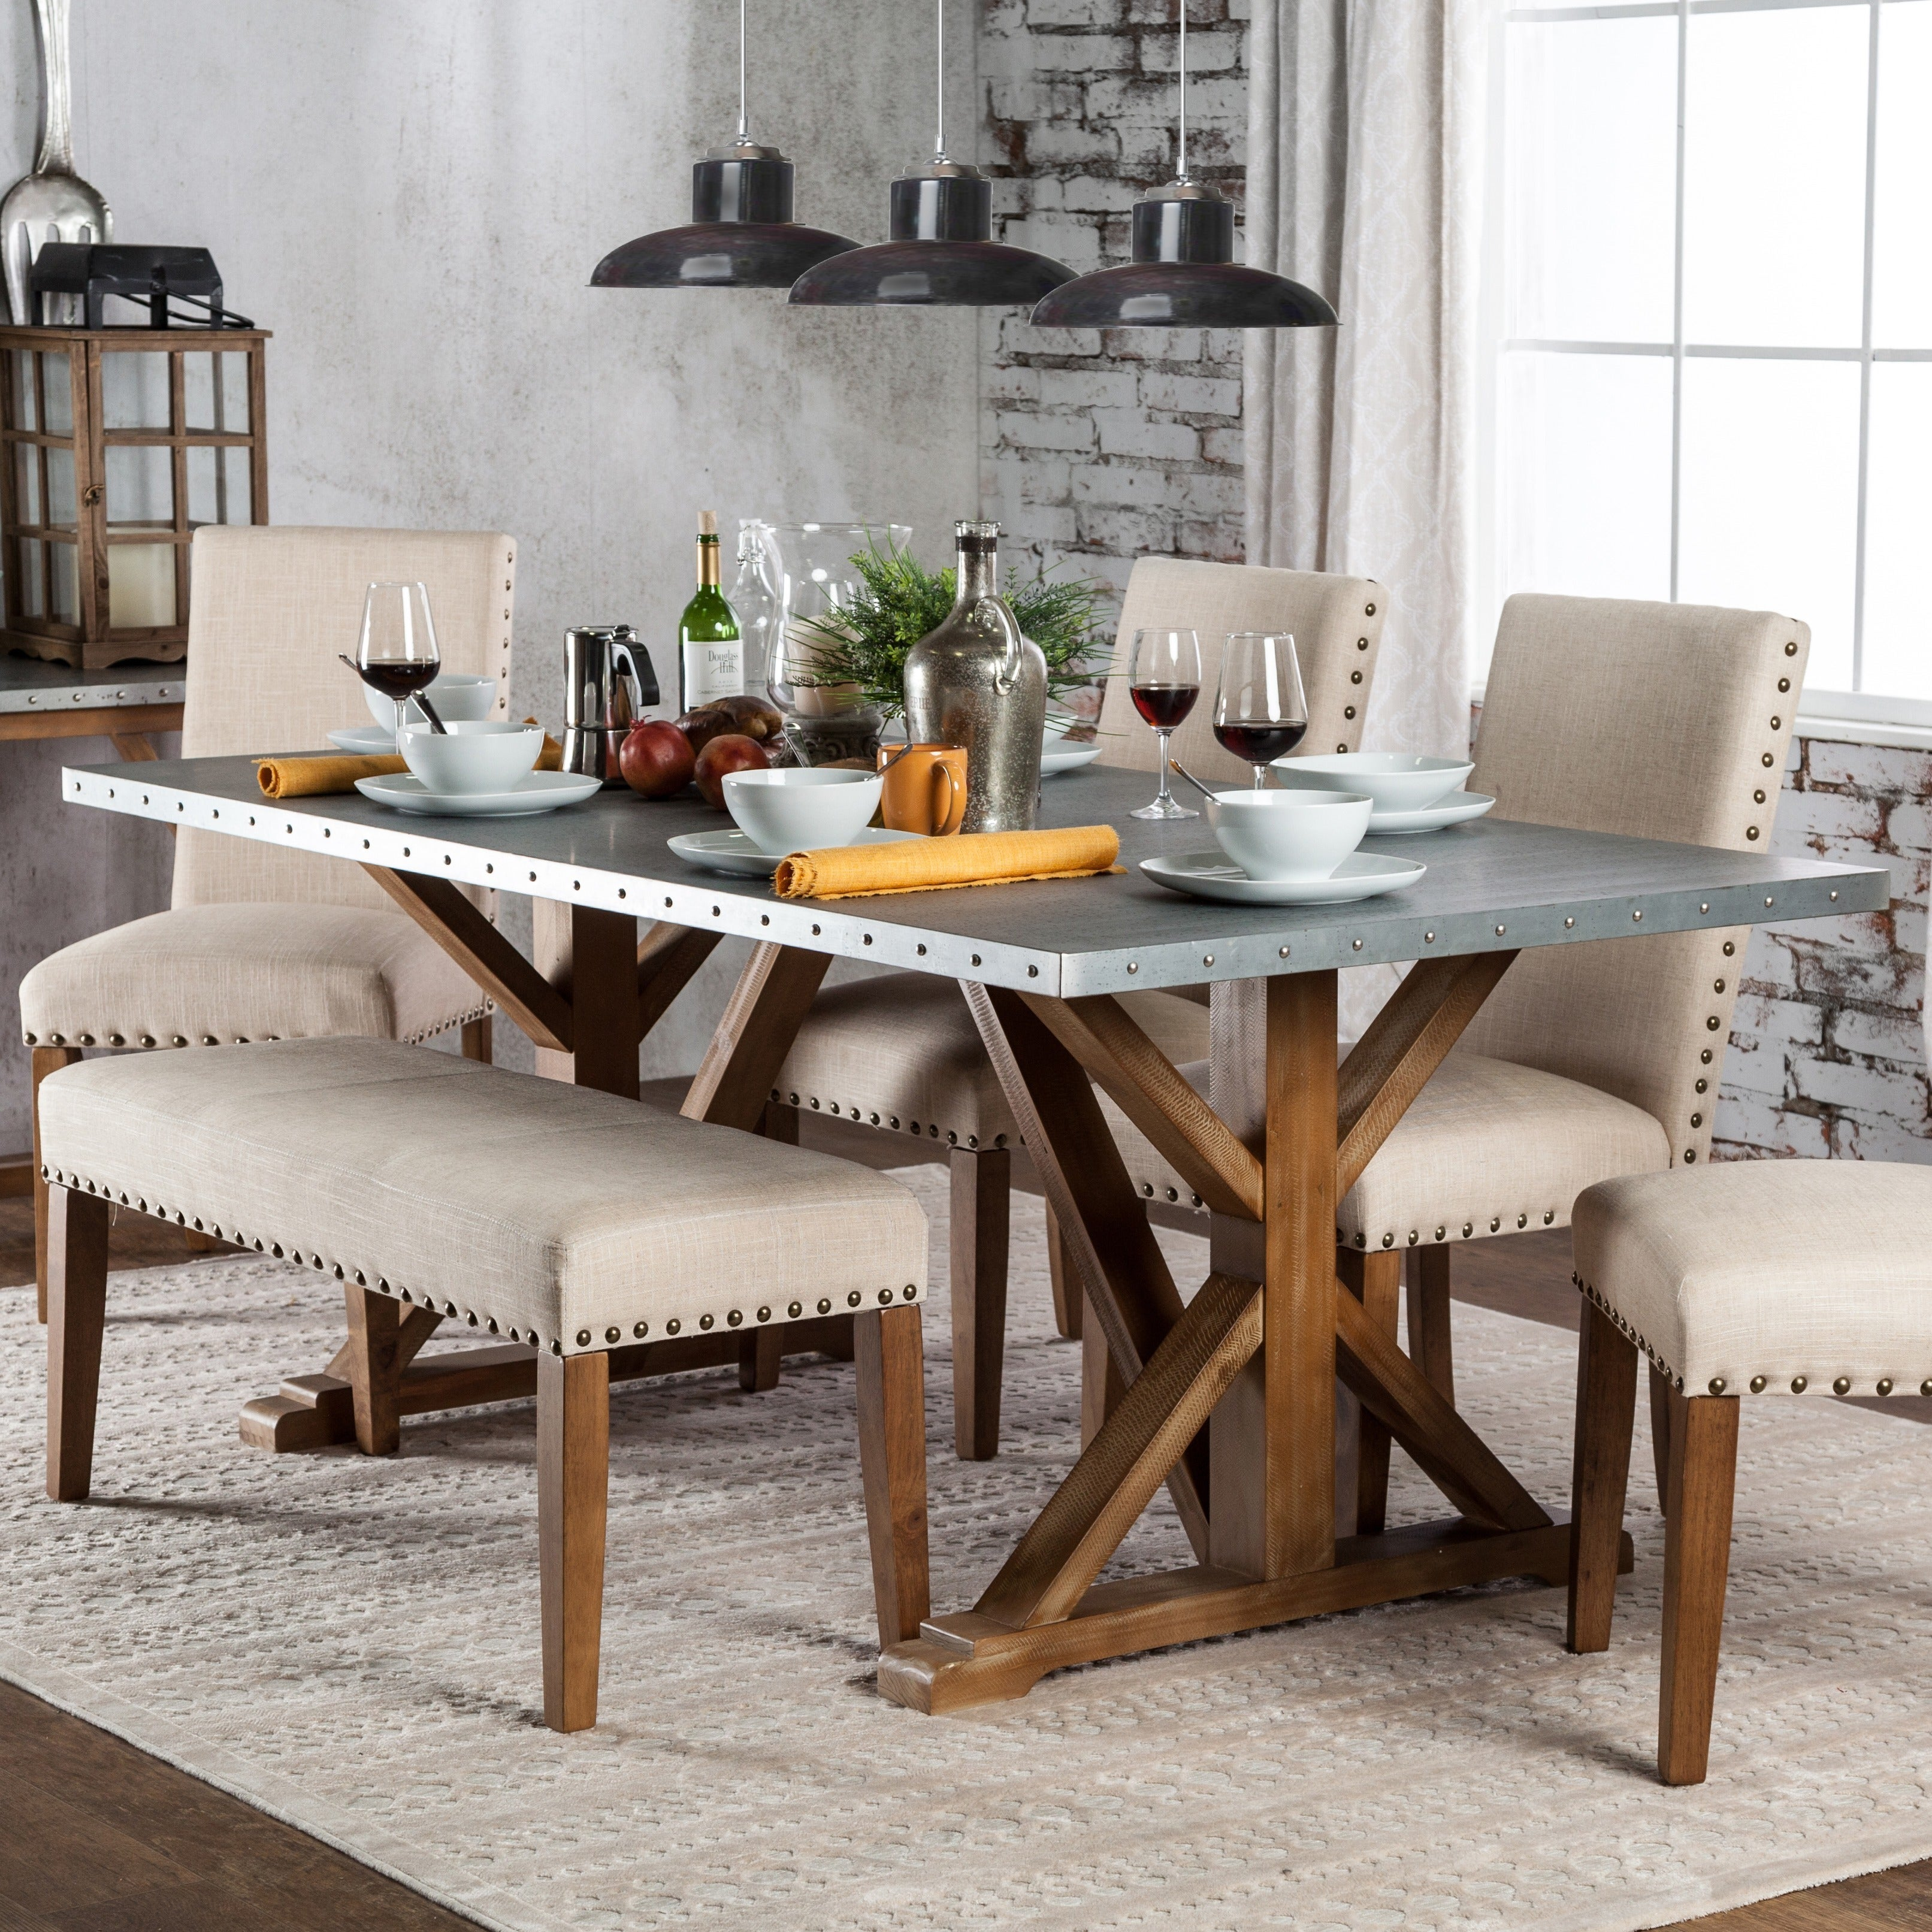 Furniture of America Aralla Industrial Style Dining Table...